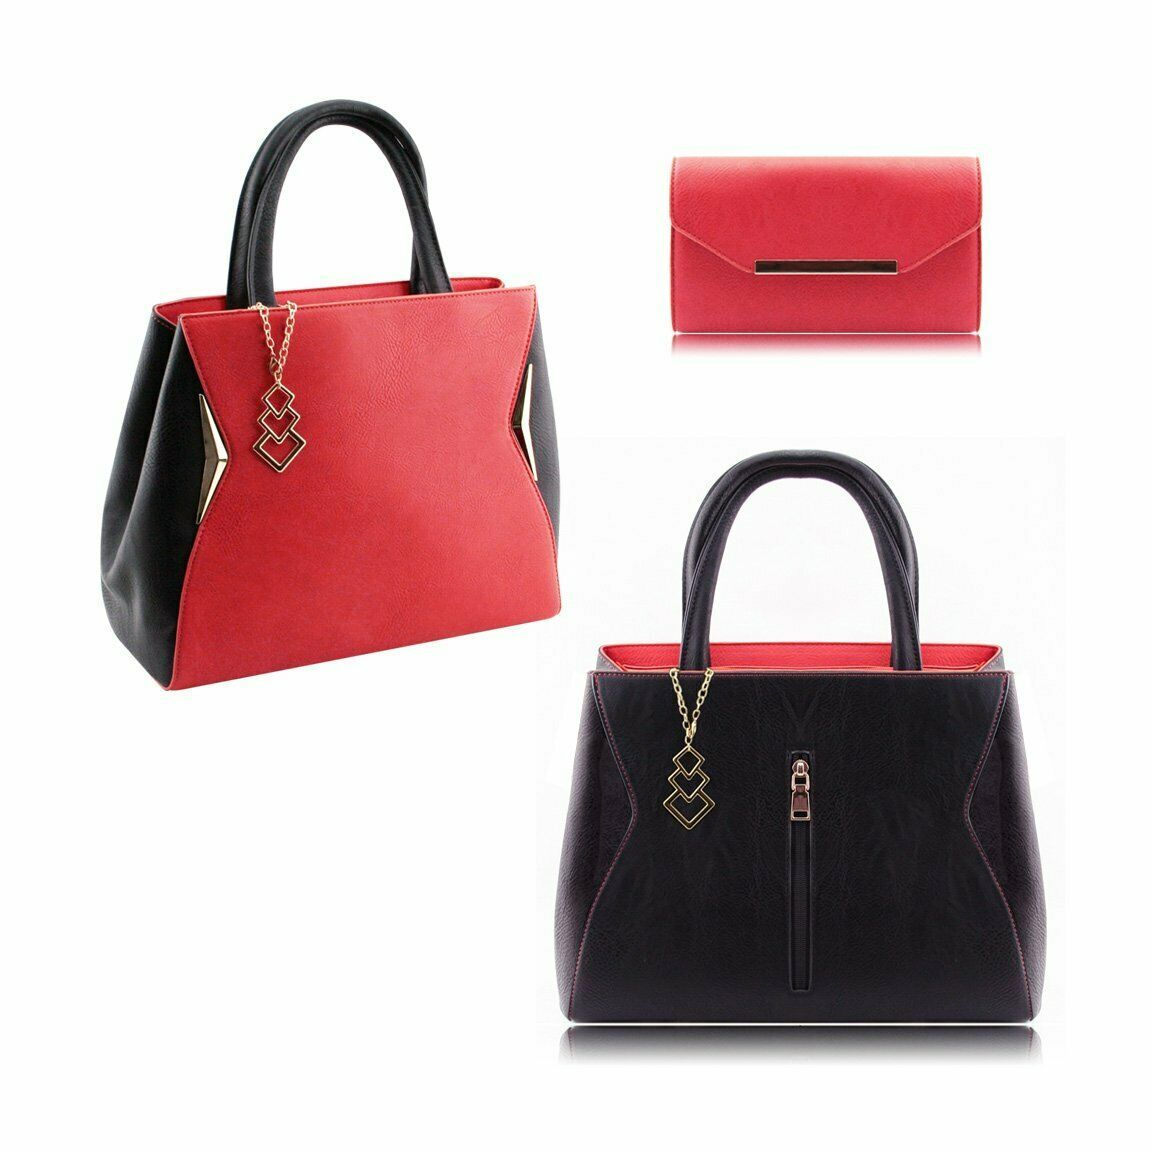 Primary image for STATEMENT STYLISH FAUX LEATHER TWO FACES HANDBAG SHOULDER BAG PURSE BLACK RED